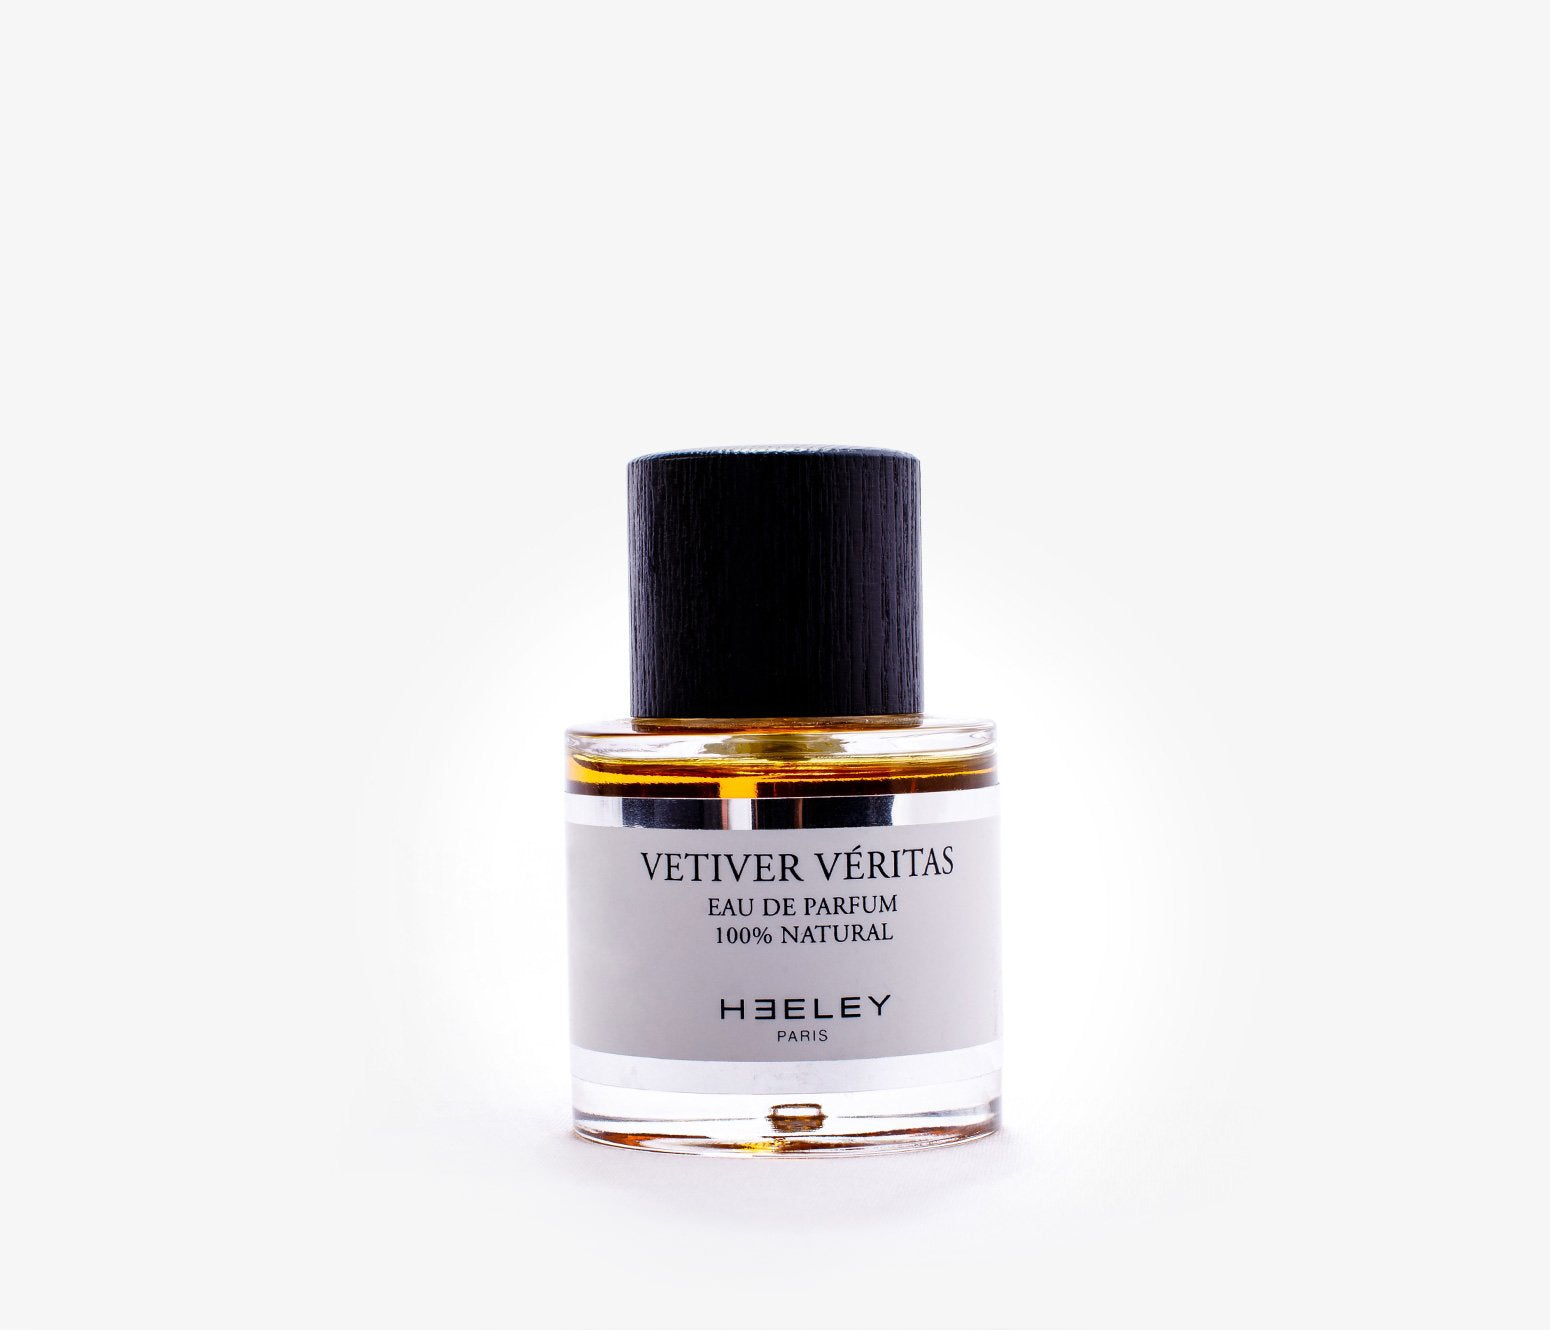 Heeley - Vetiver Veritas